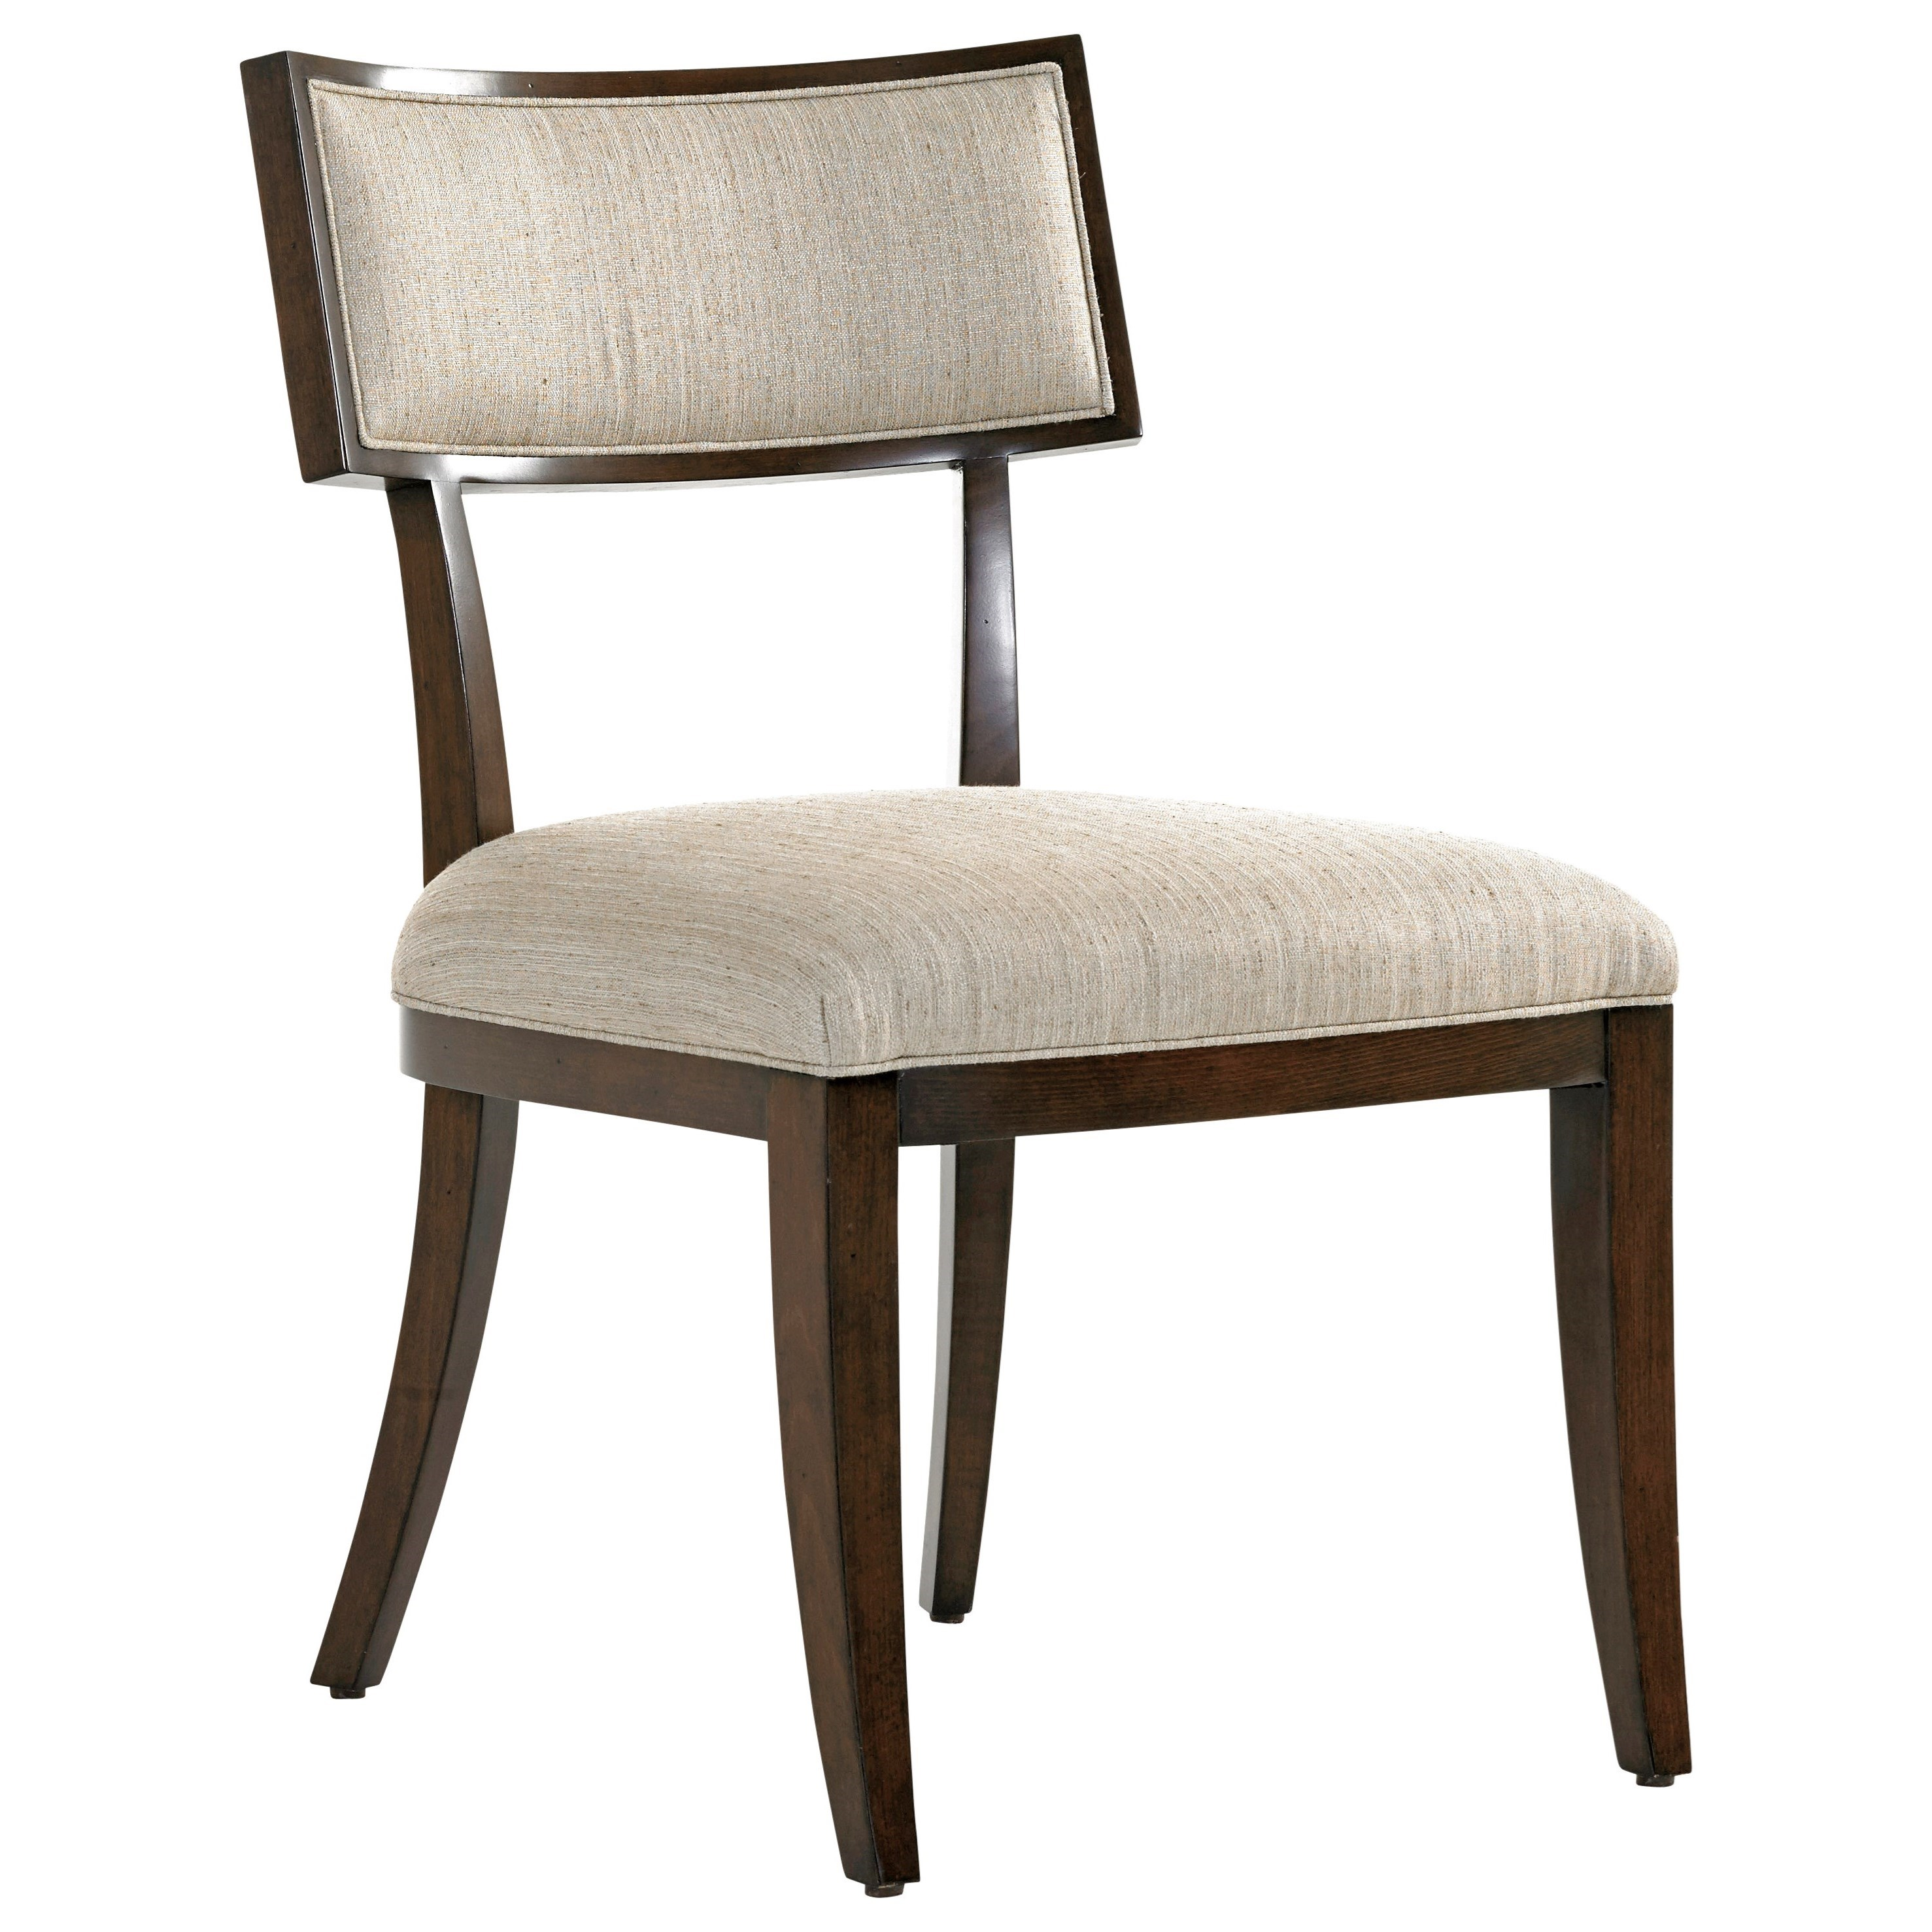 MacArthur Park Whittier Side Chair in Wheat Fabric by Lexington at Baer's Furniture